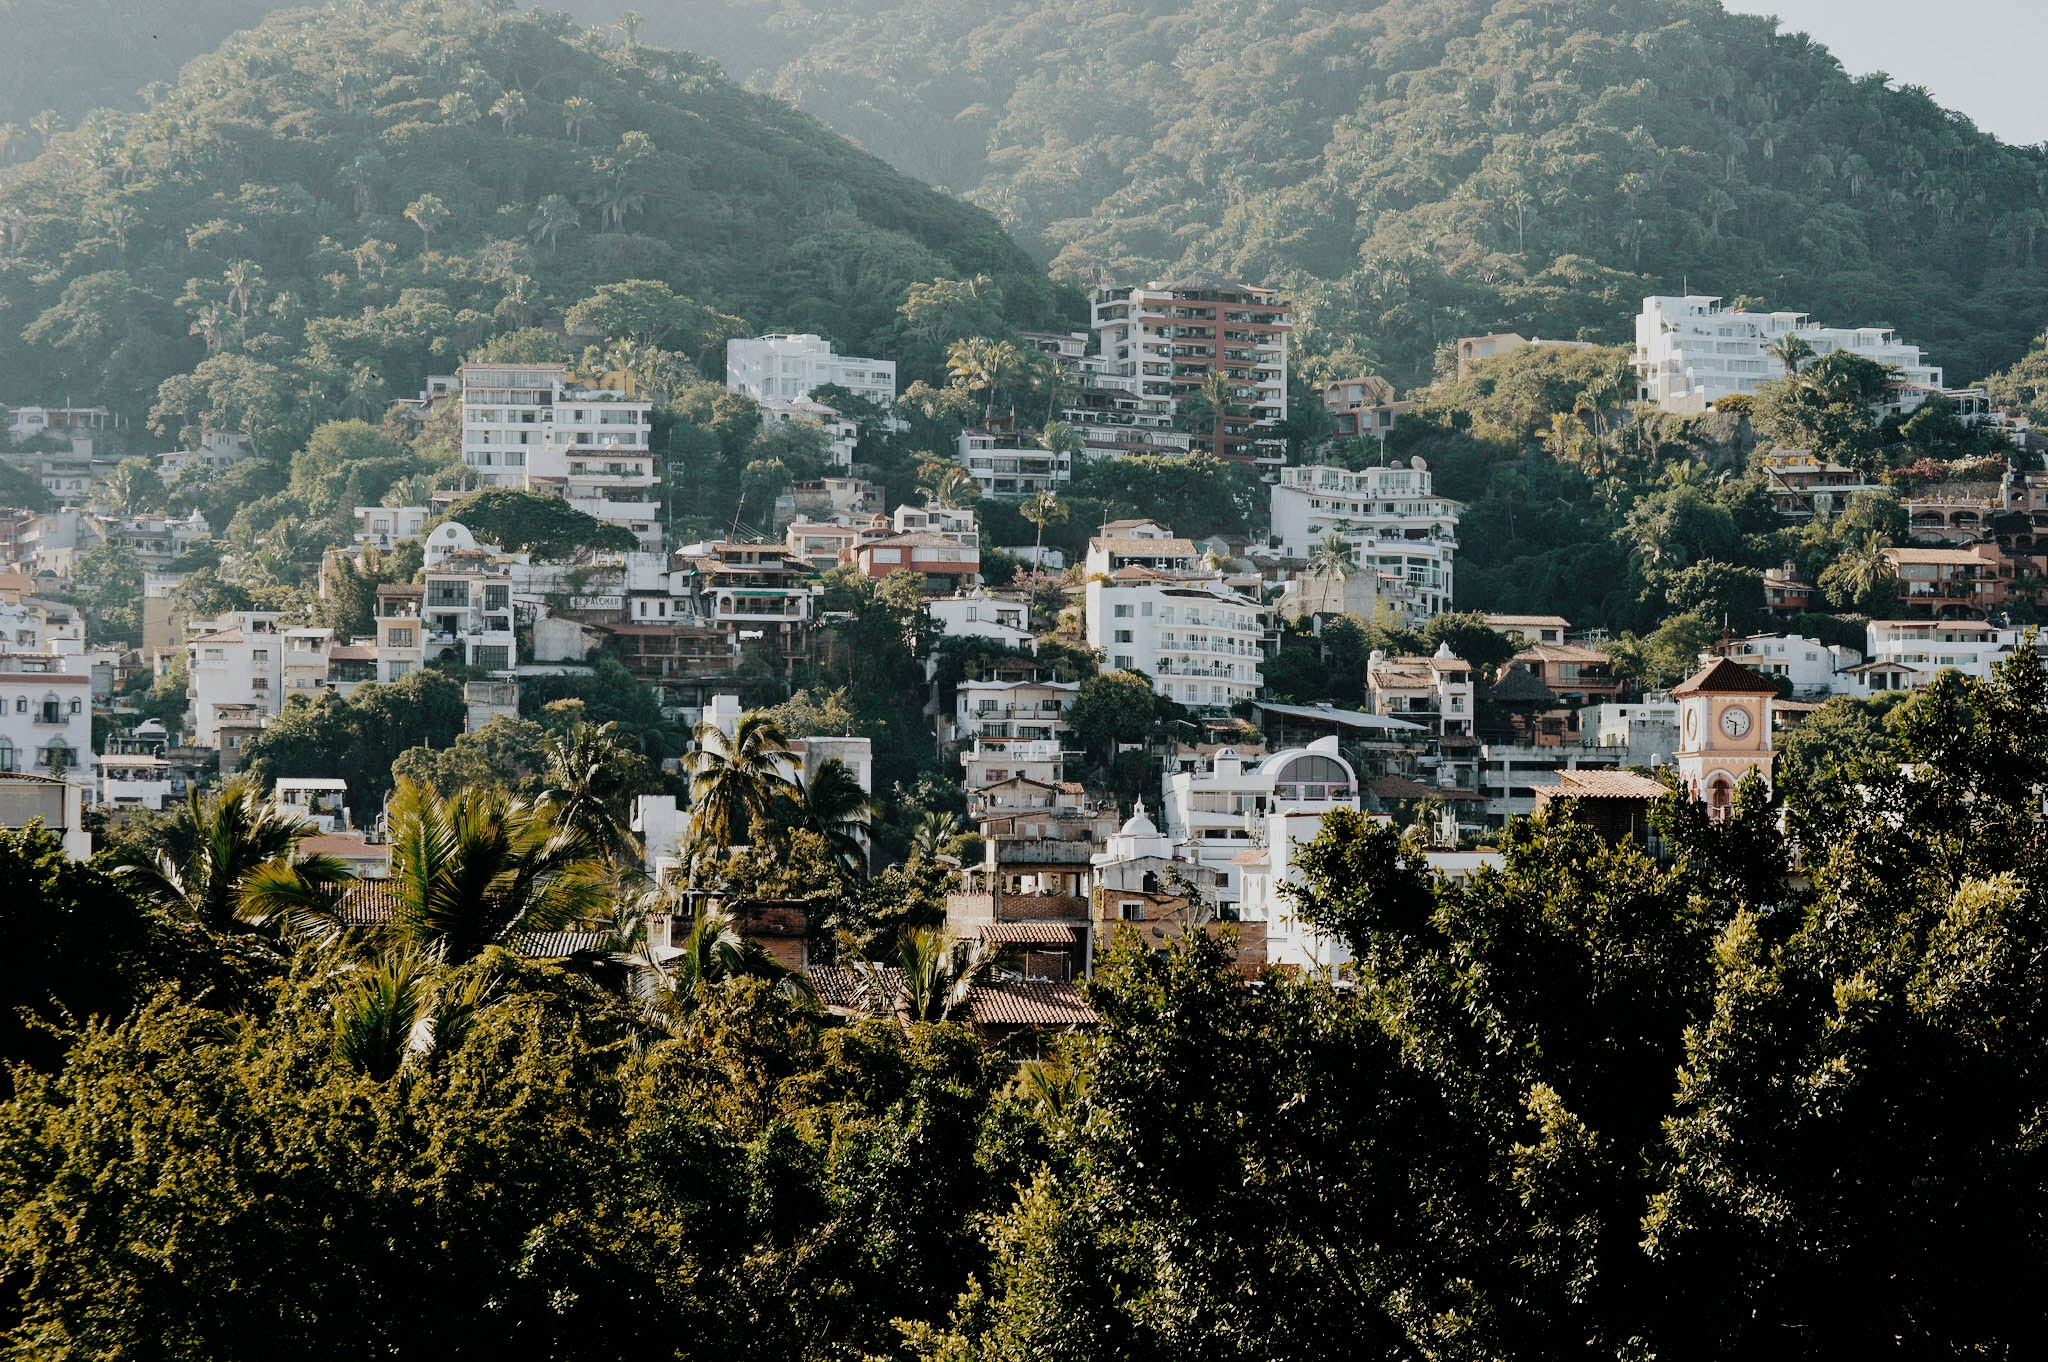 White and Brown Buildings on Mountain, Architecture, Buildings, City, Cityscape, HQ Photo